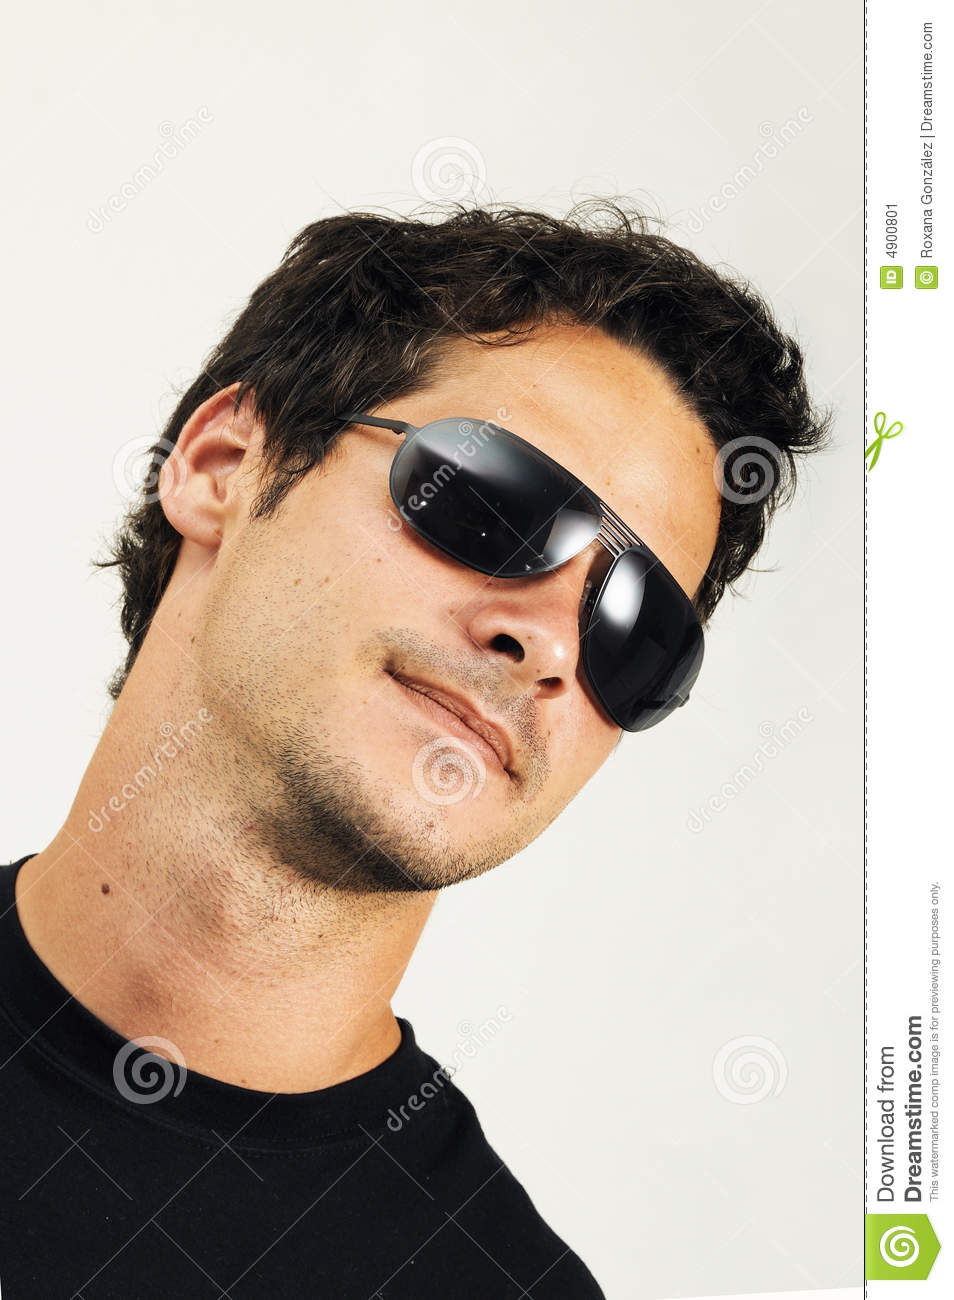 Man with fashion sunglasses